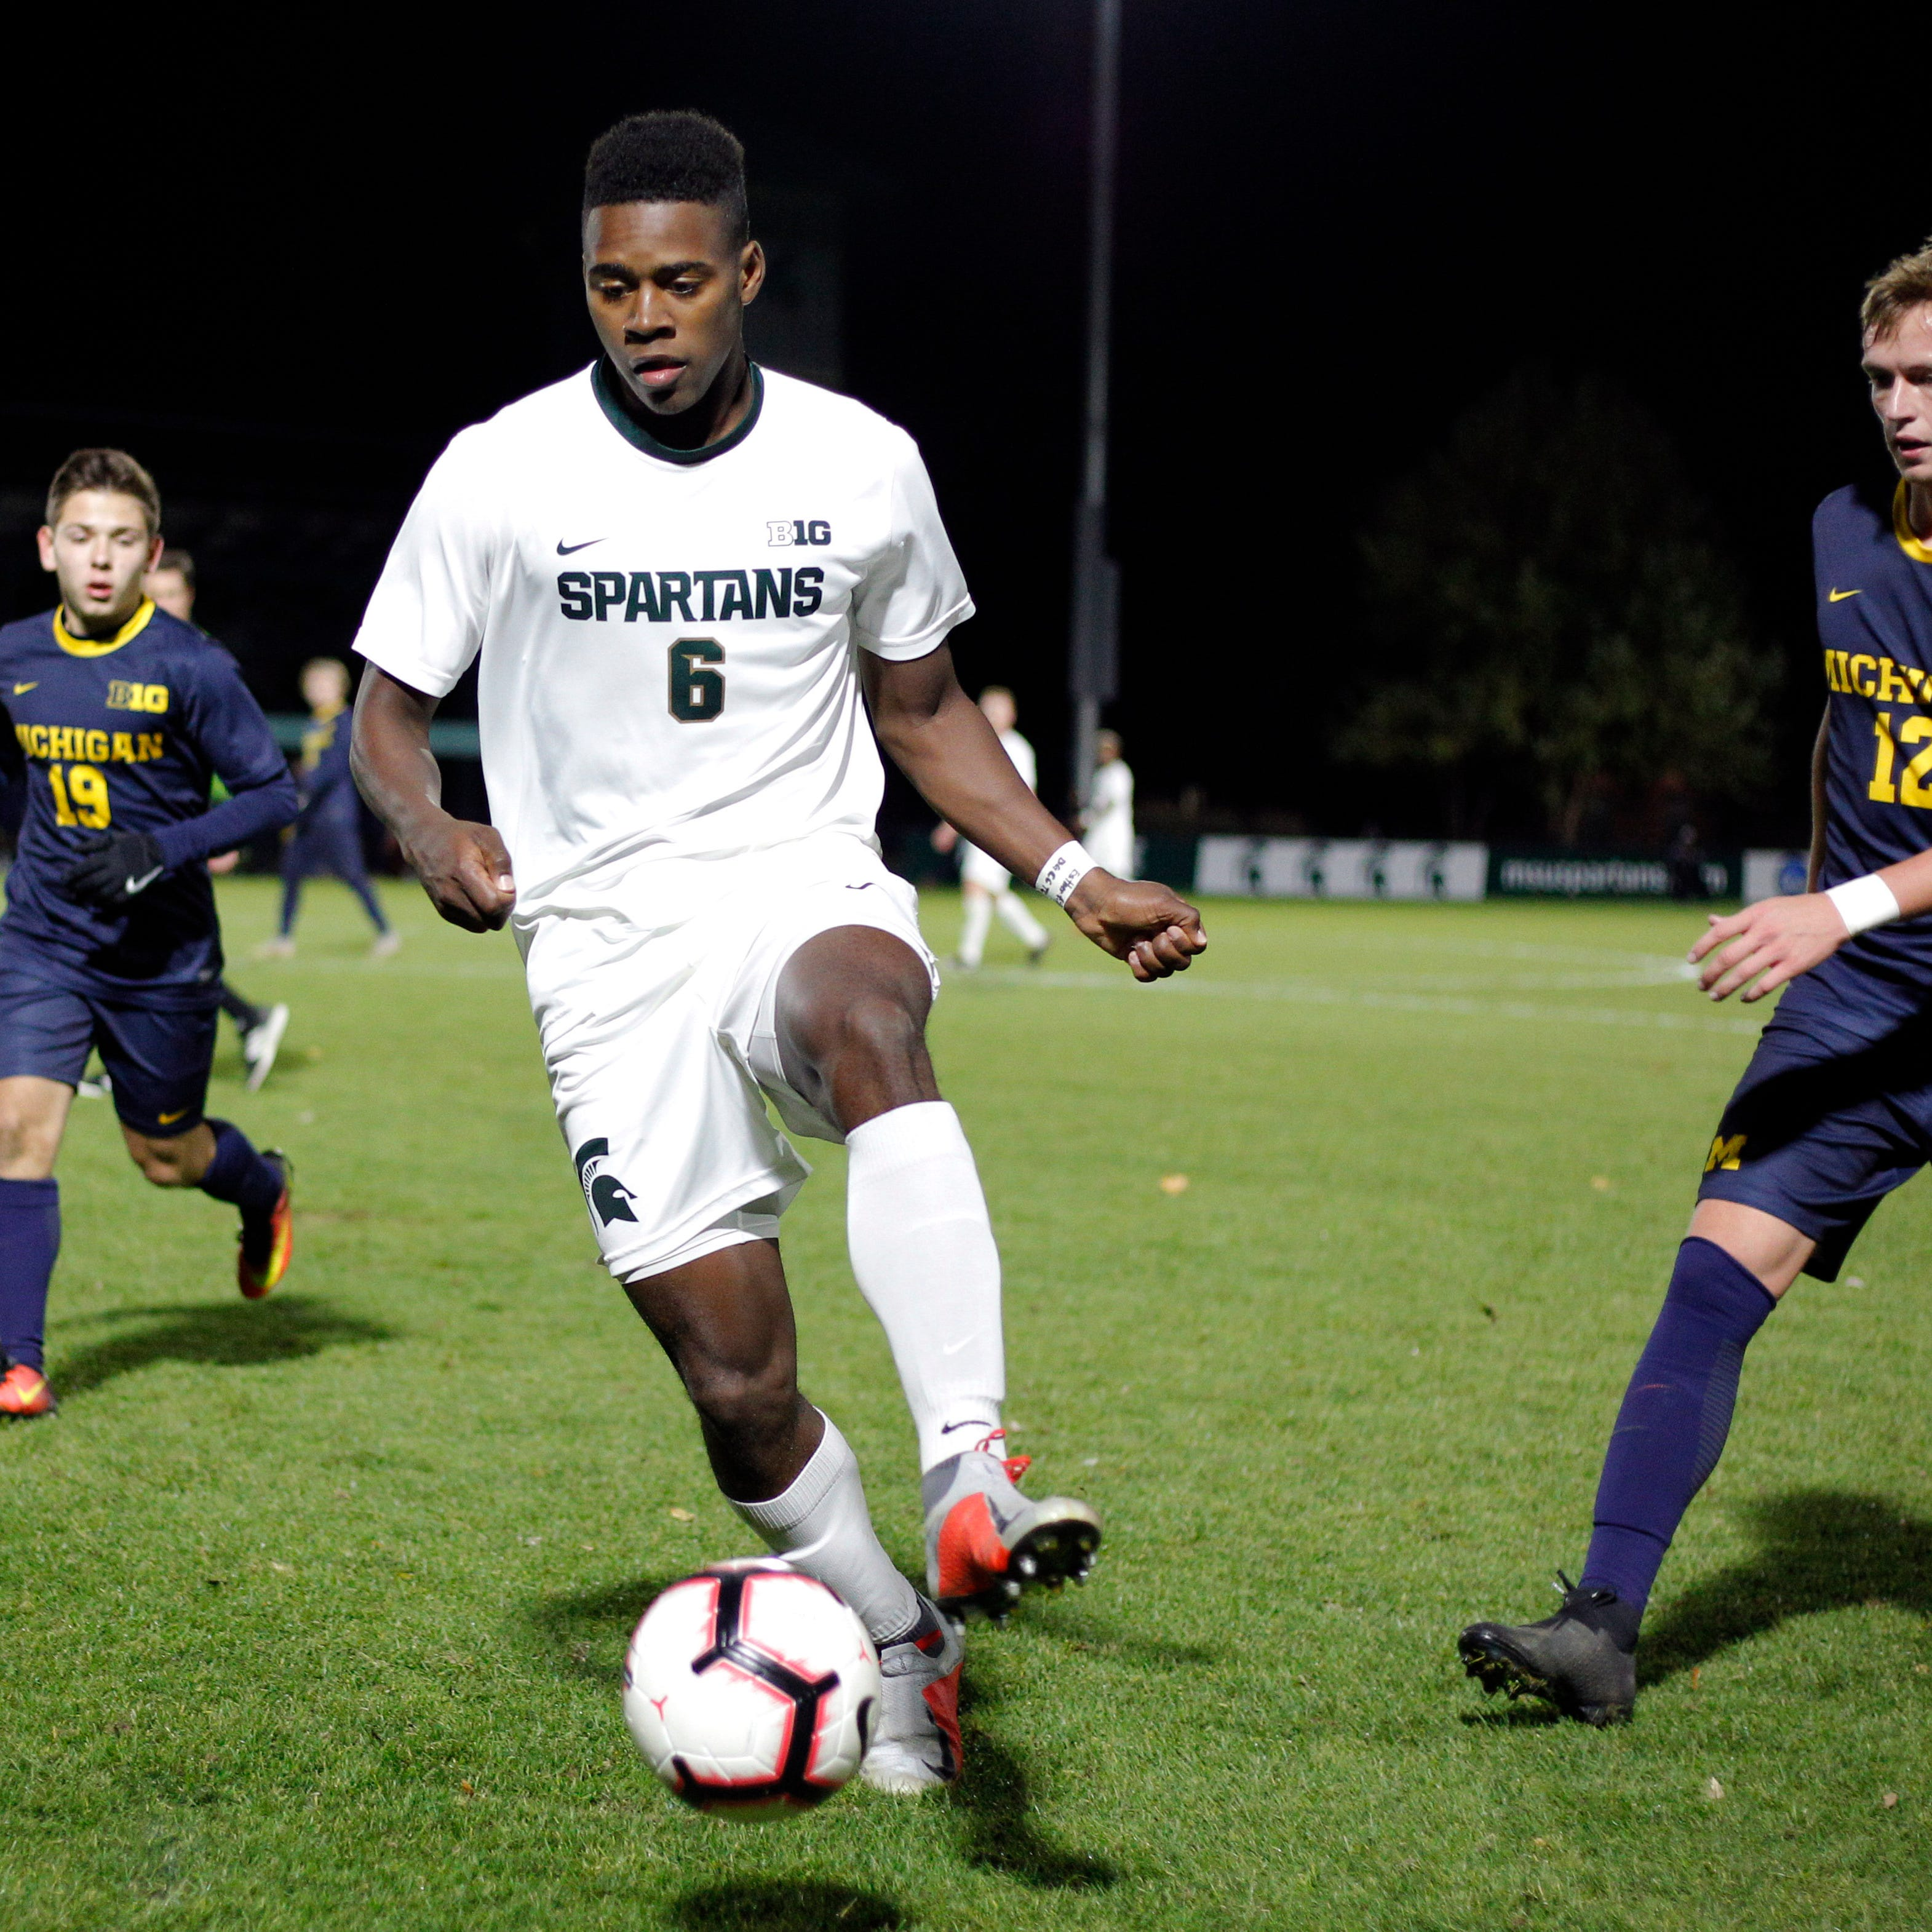 Michigan State men's soccer vs. Illinois-Chicago in the NCAA tournament: What to watch for